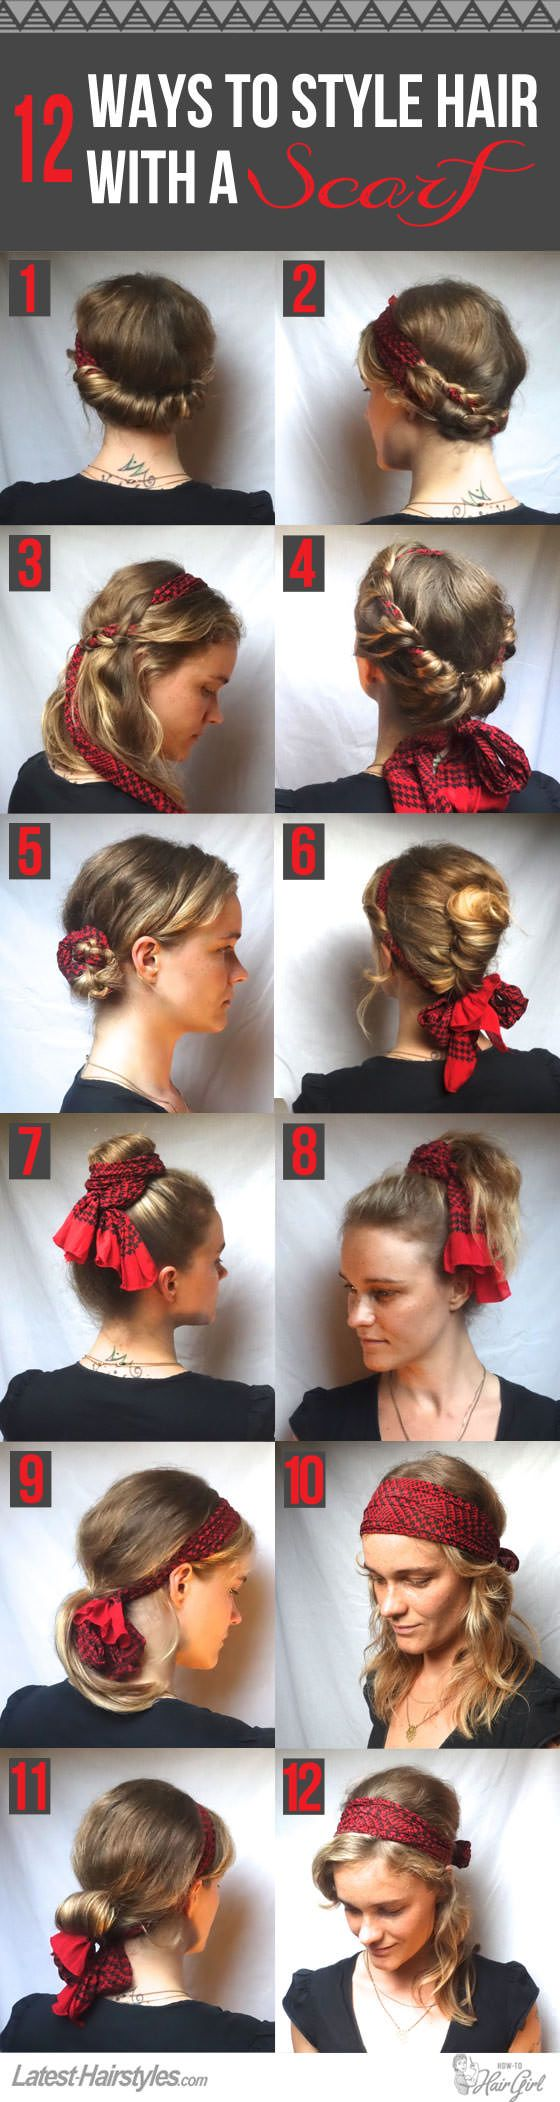 12 Incredibly Chic Ways to Style Hair With a Scarf